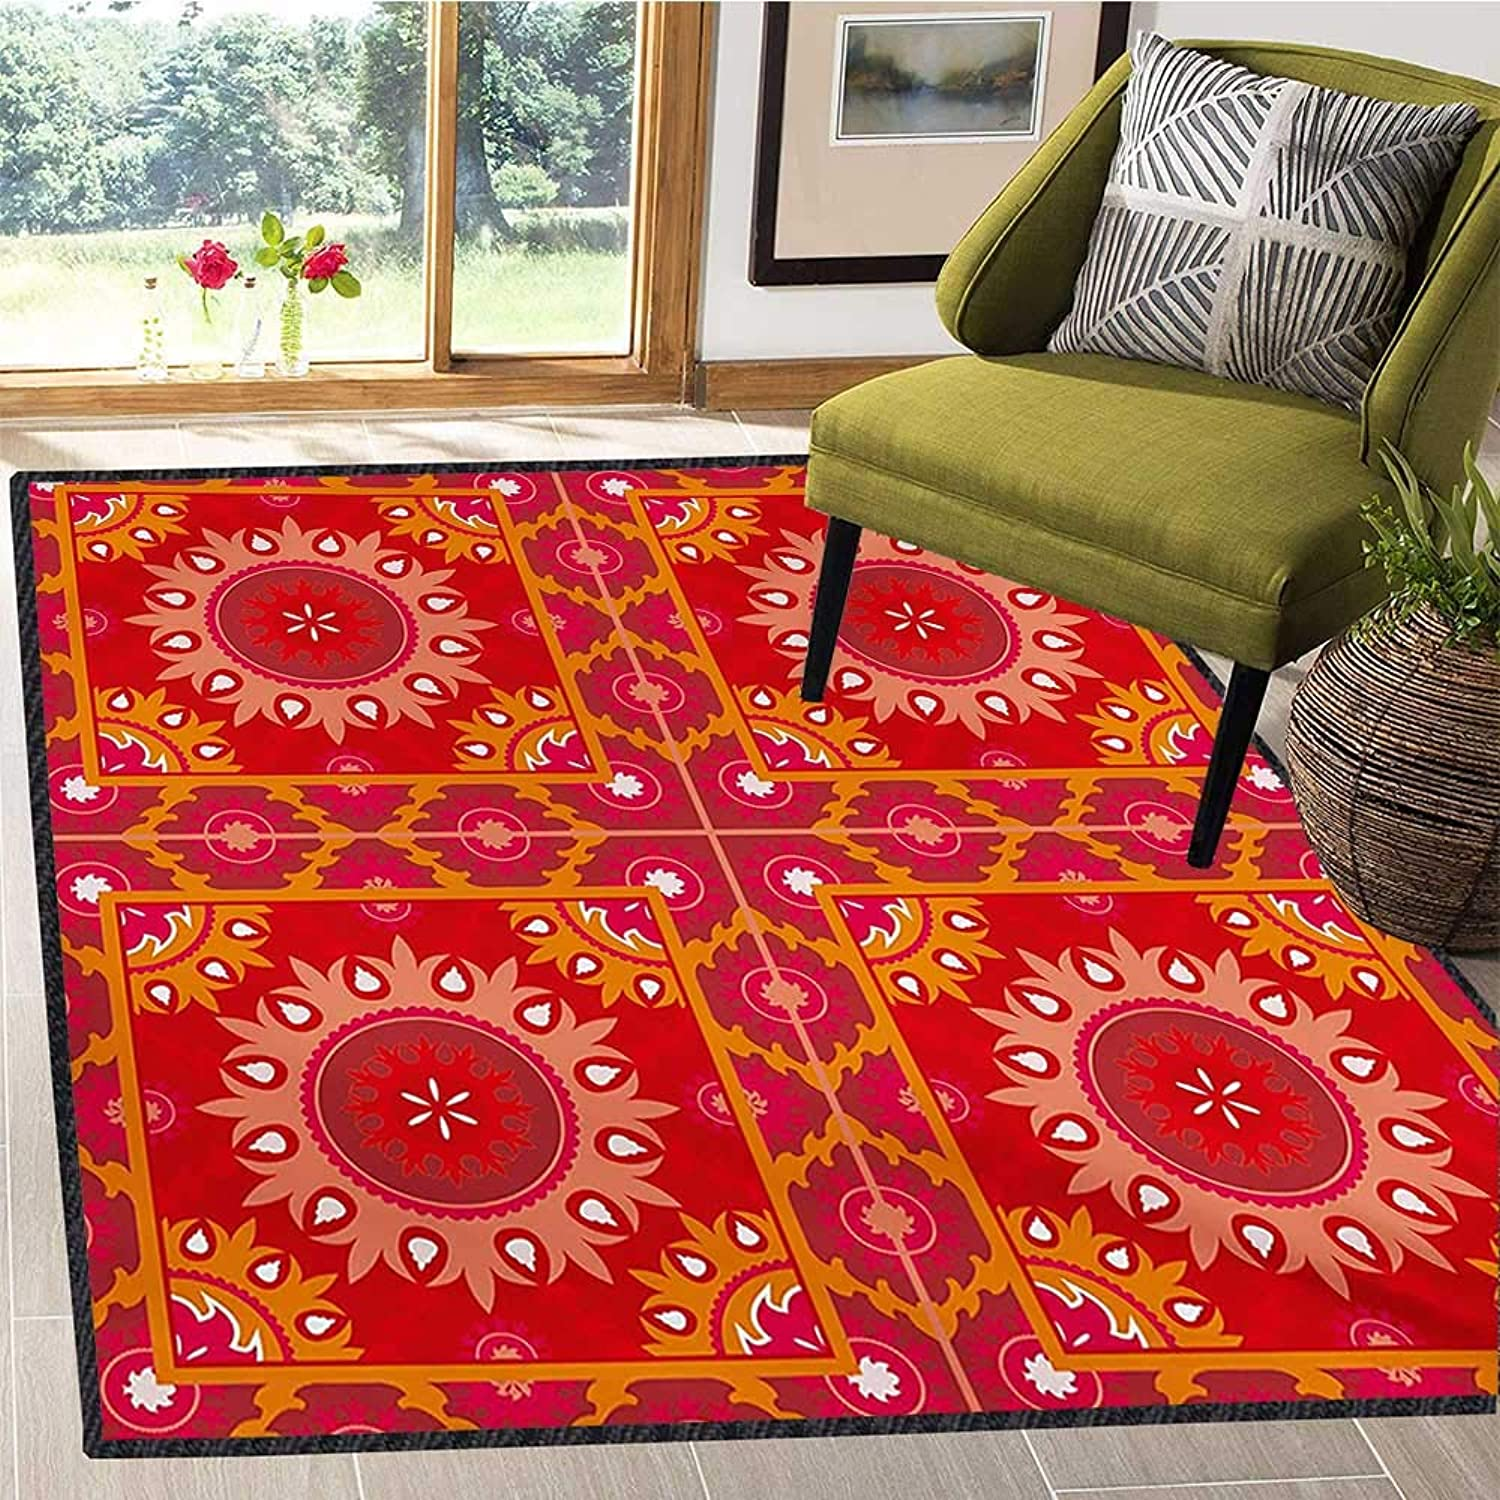 Red Mandala, Floor Mat for Kids, Artistic Oriental Frames Squares with Asian Inspired Elements Symmetric Tile, Door Mat Indoors Bathroom Mats Non Slip 6x7 Ft Multicolor